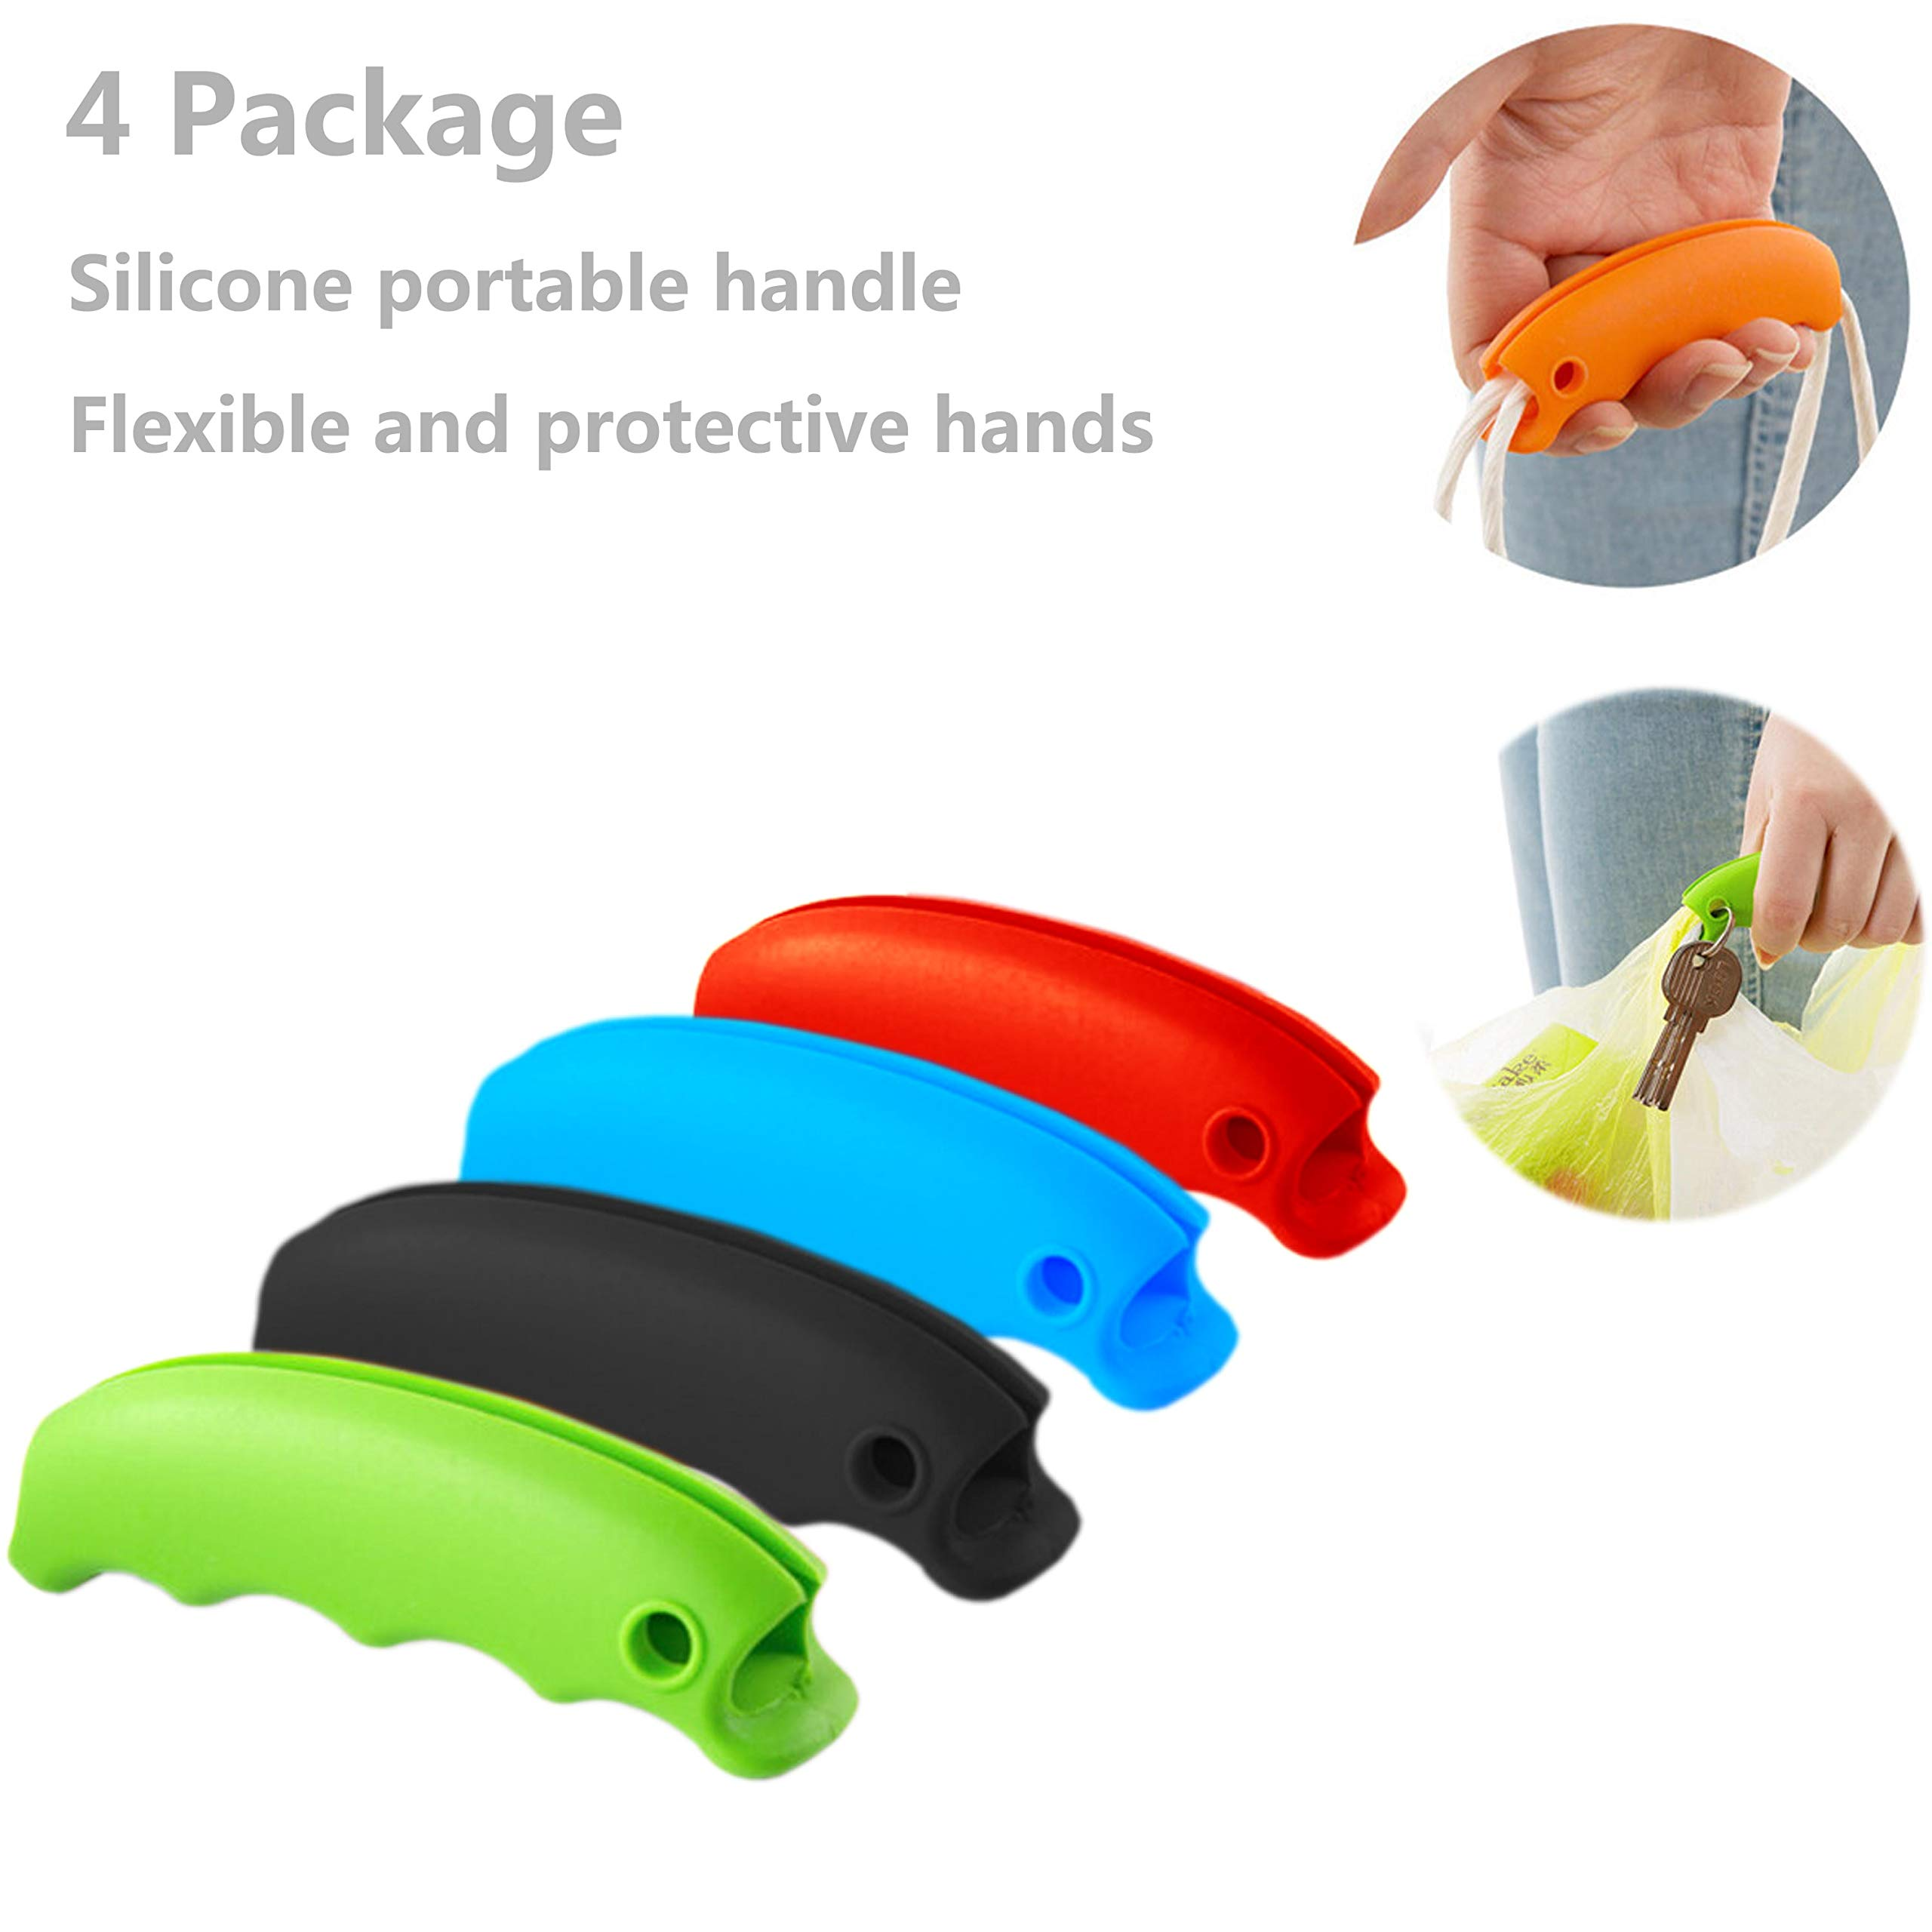 4 Package 4 Color Plastic Bag Holder Carrier, Strong Silicone Handle Carrier- For Grocery Plastic Bag, Shopping Bags Garbage bag